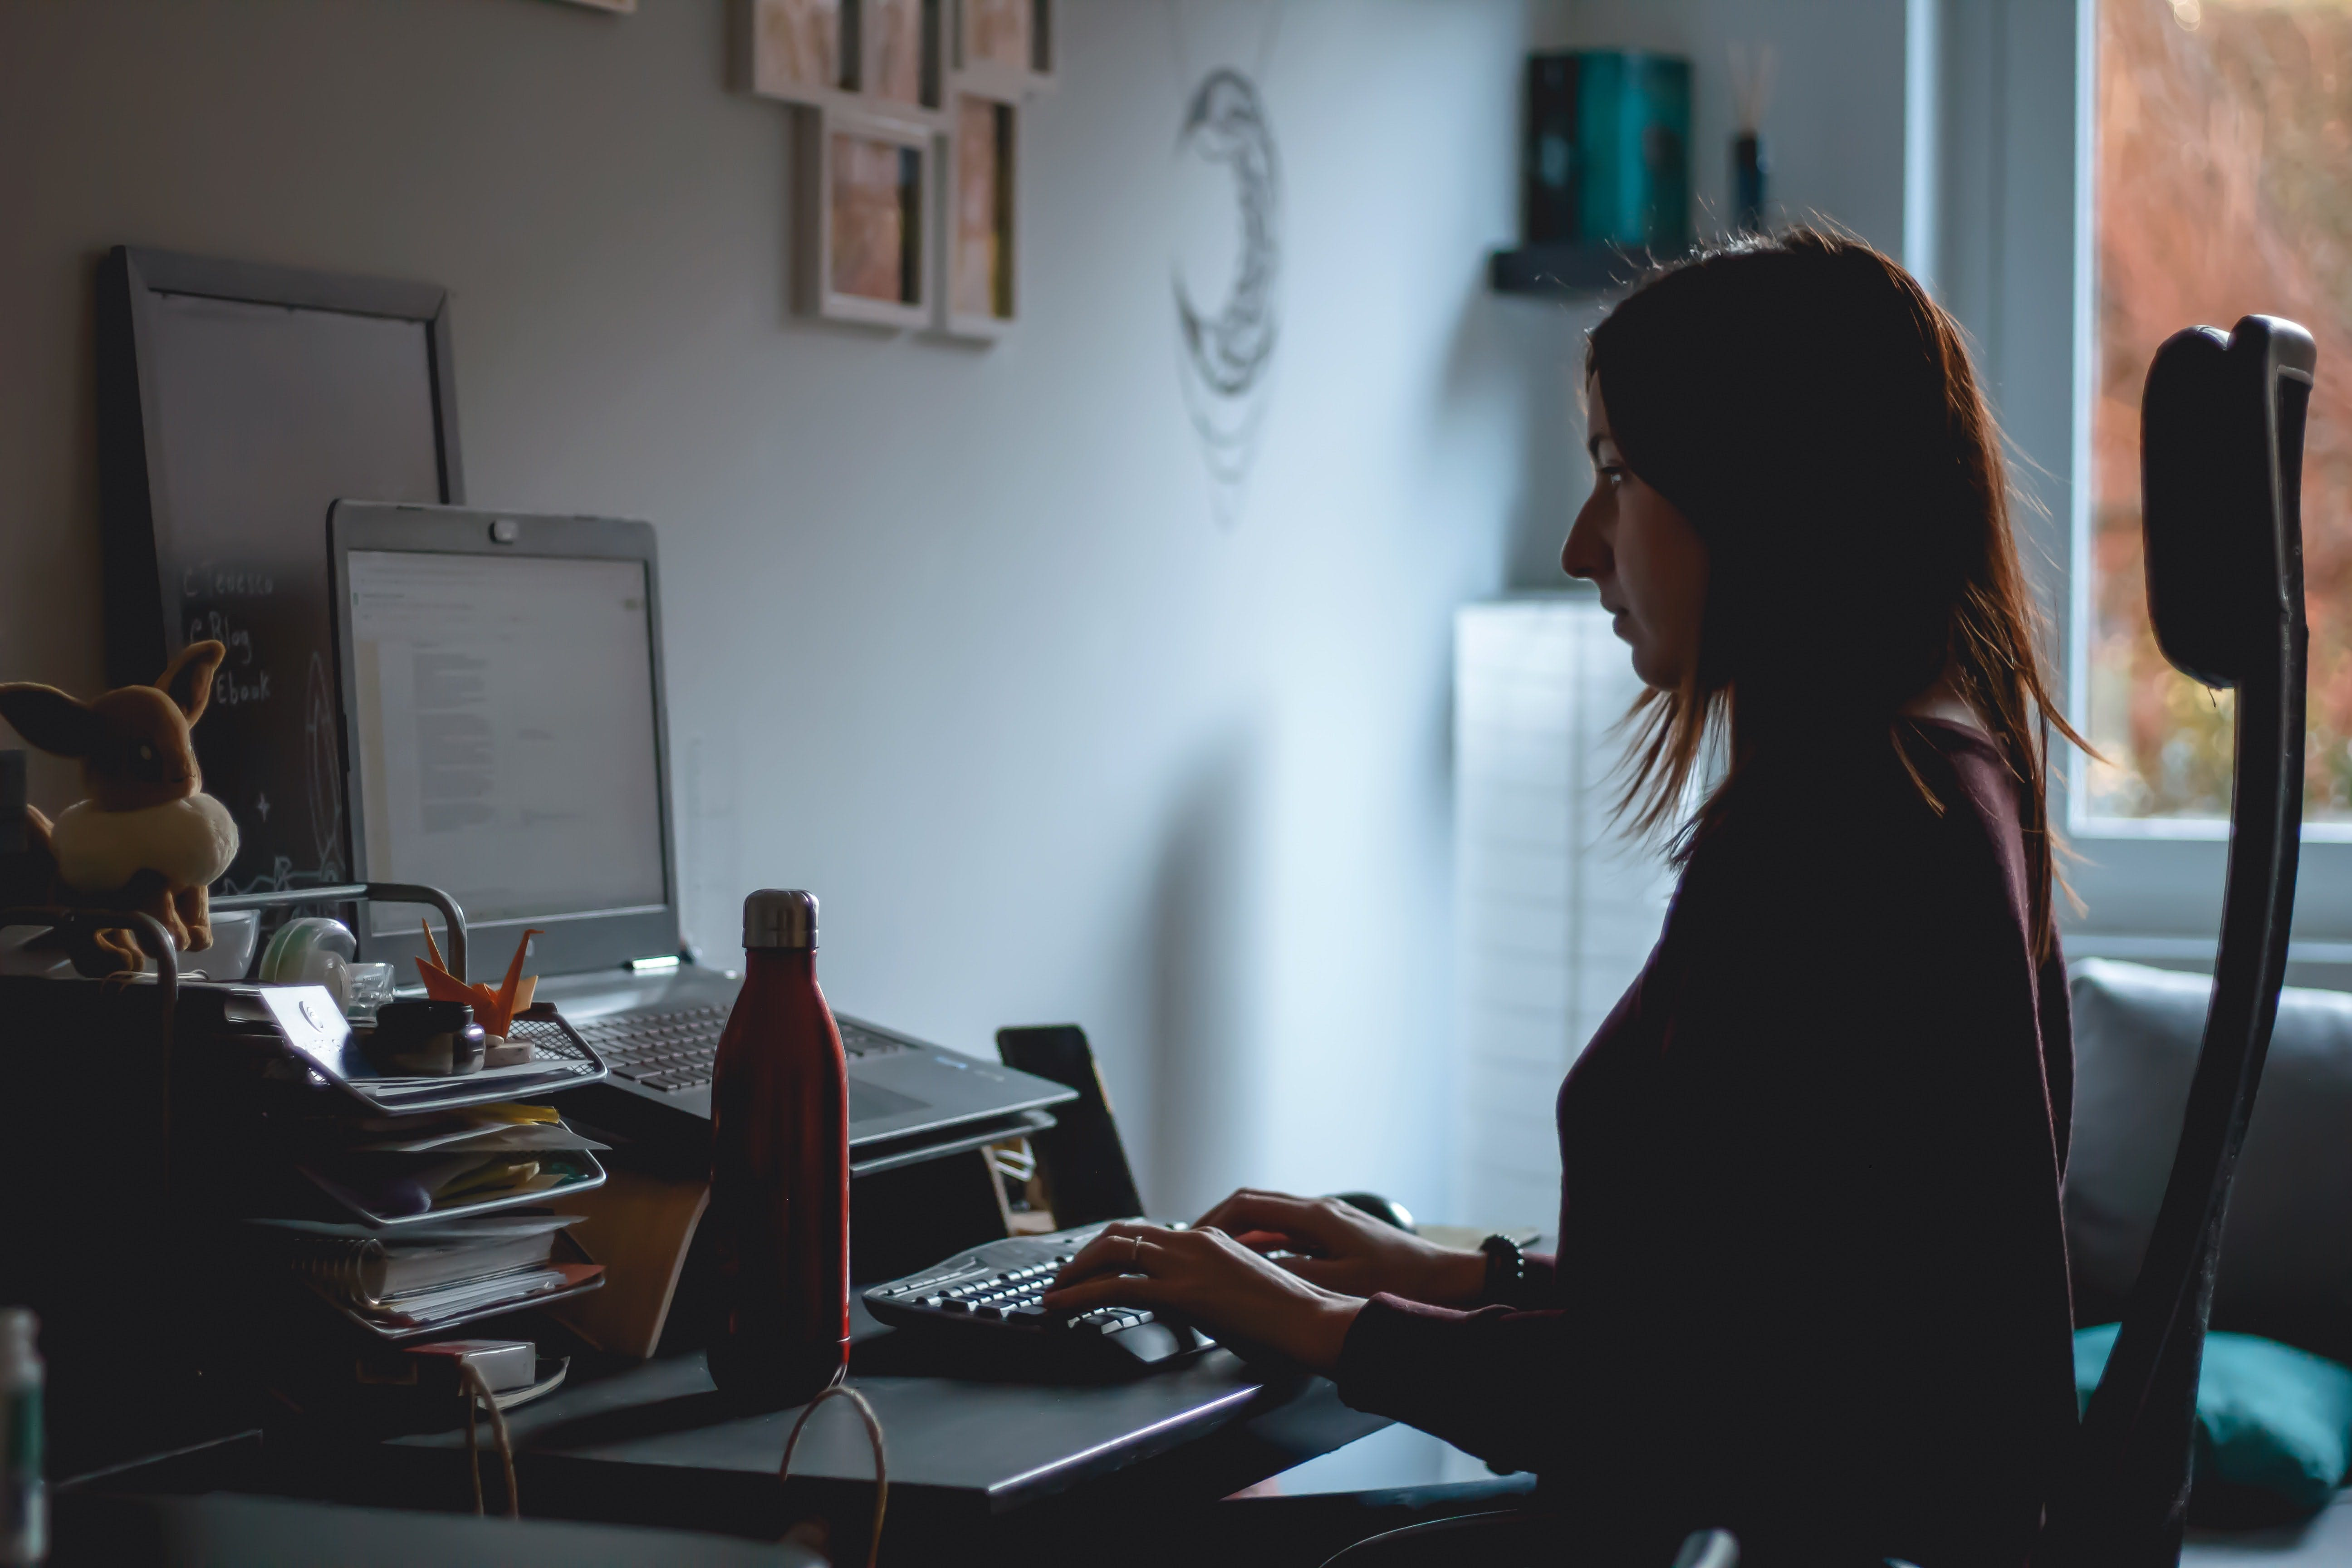 susanna marsiglia unsplash photo woman sat at desk working from home posture sitting back ache nhs advice repetitive strain injury avoid office chair work teaching learning scr tracker single central register record tracking vetting checks